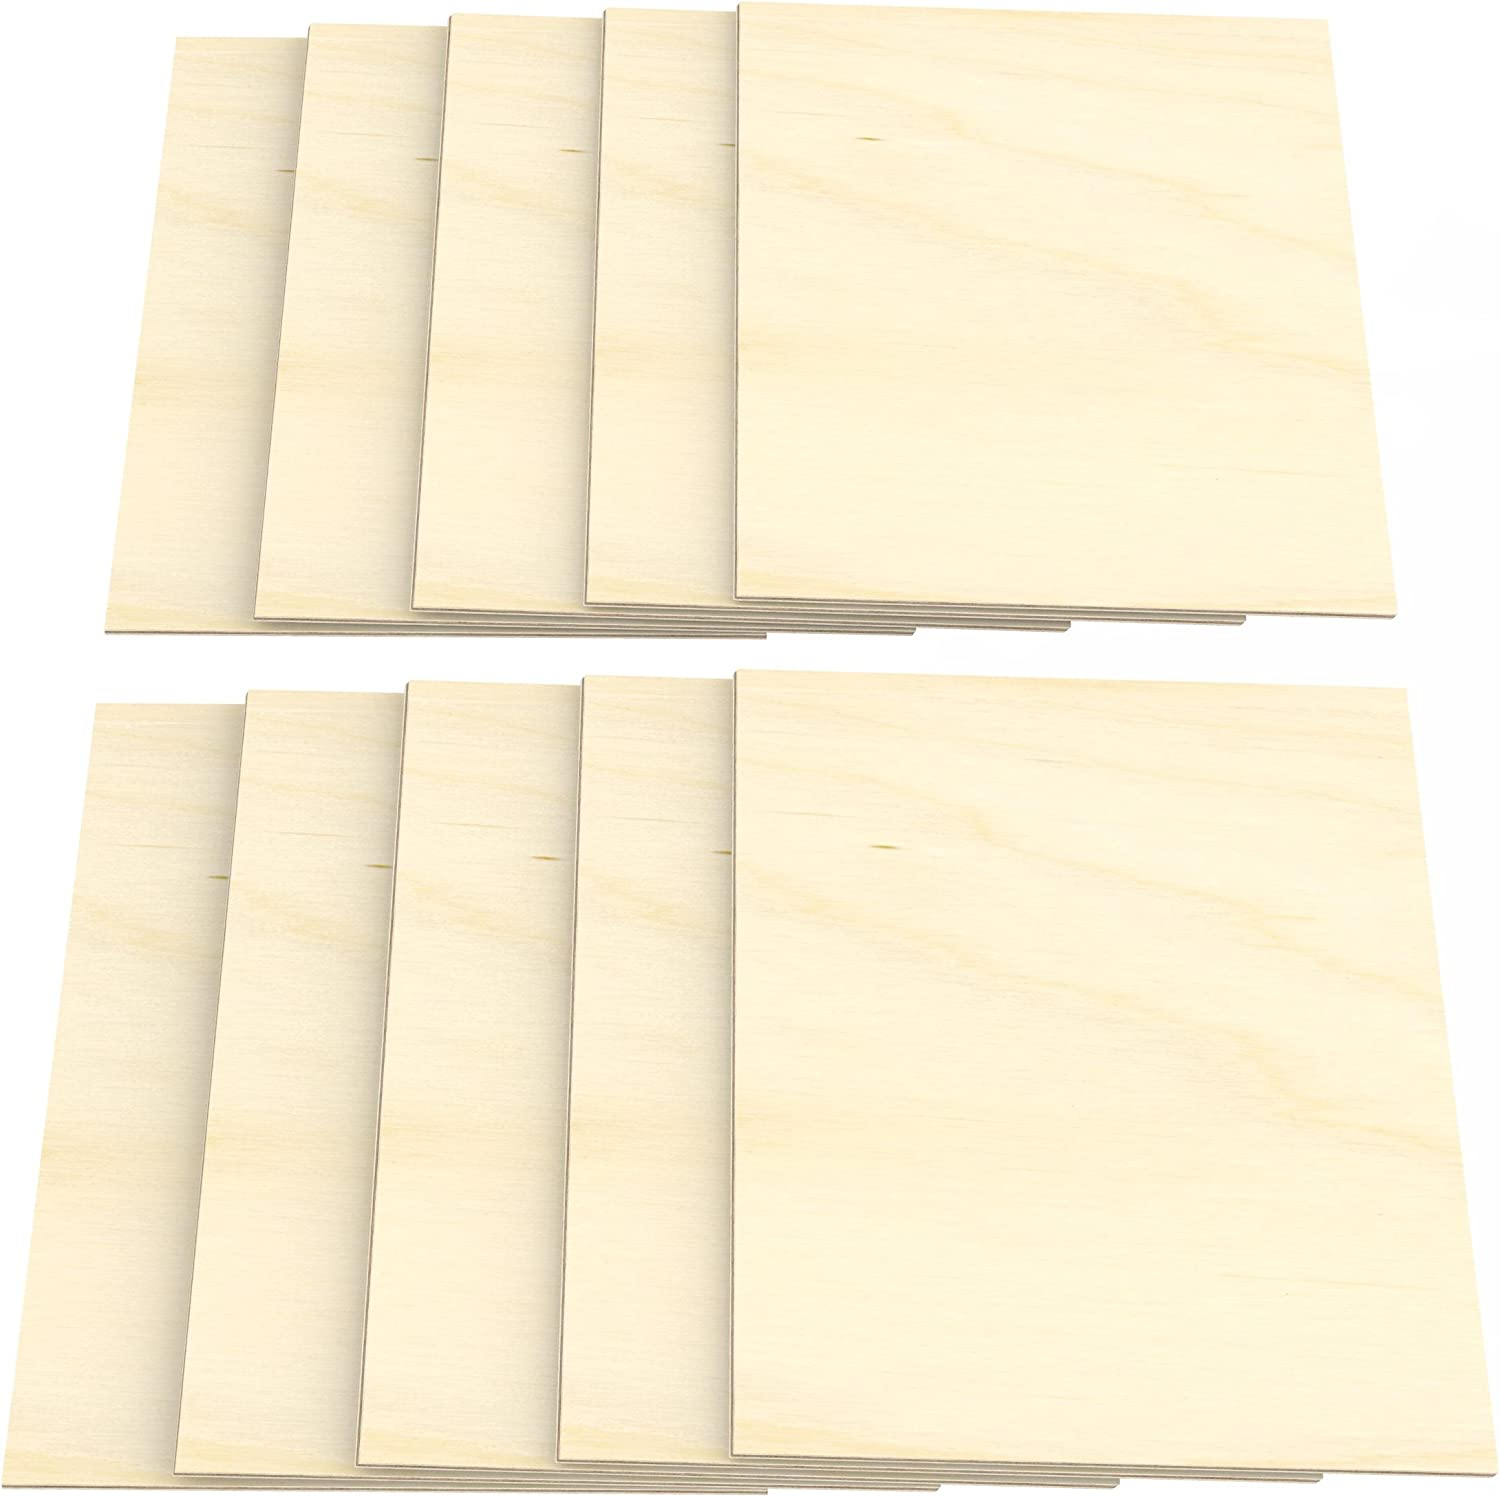 210 mm x 297 mm AUPROTEC 3X A4 Plywood Sheets 3mm Birch First Class Birchwood Solid ply Wood Hardwood Panels for Arts and Crafts fretsaw Woodworking jigs Painting Drawing Board